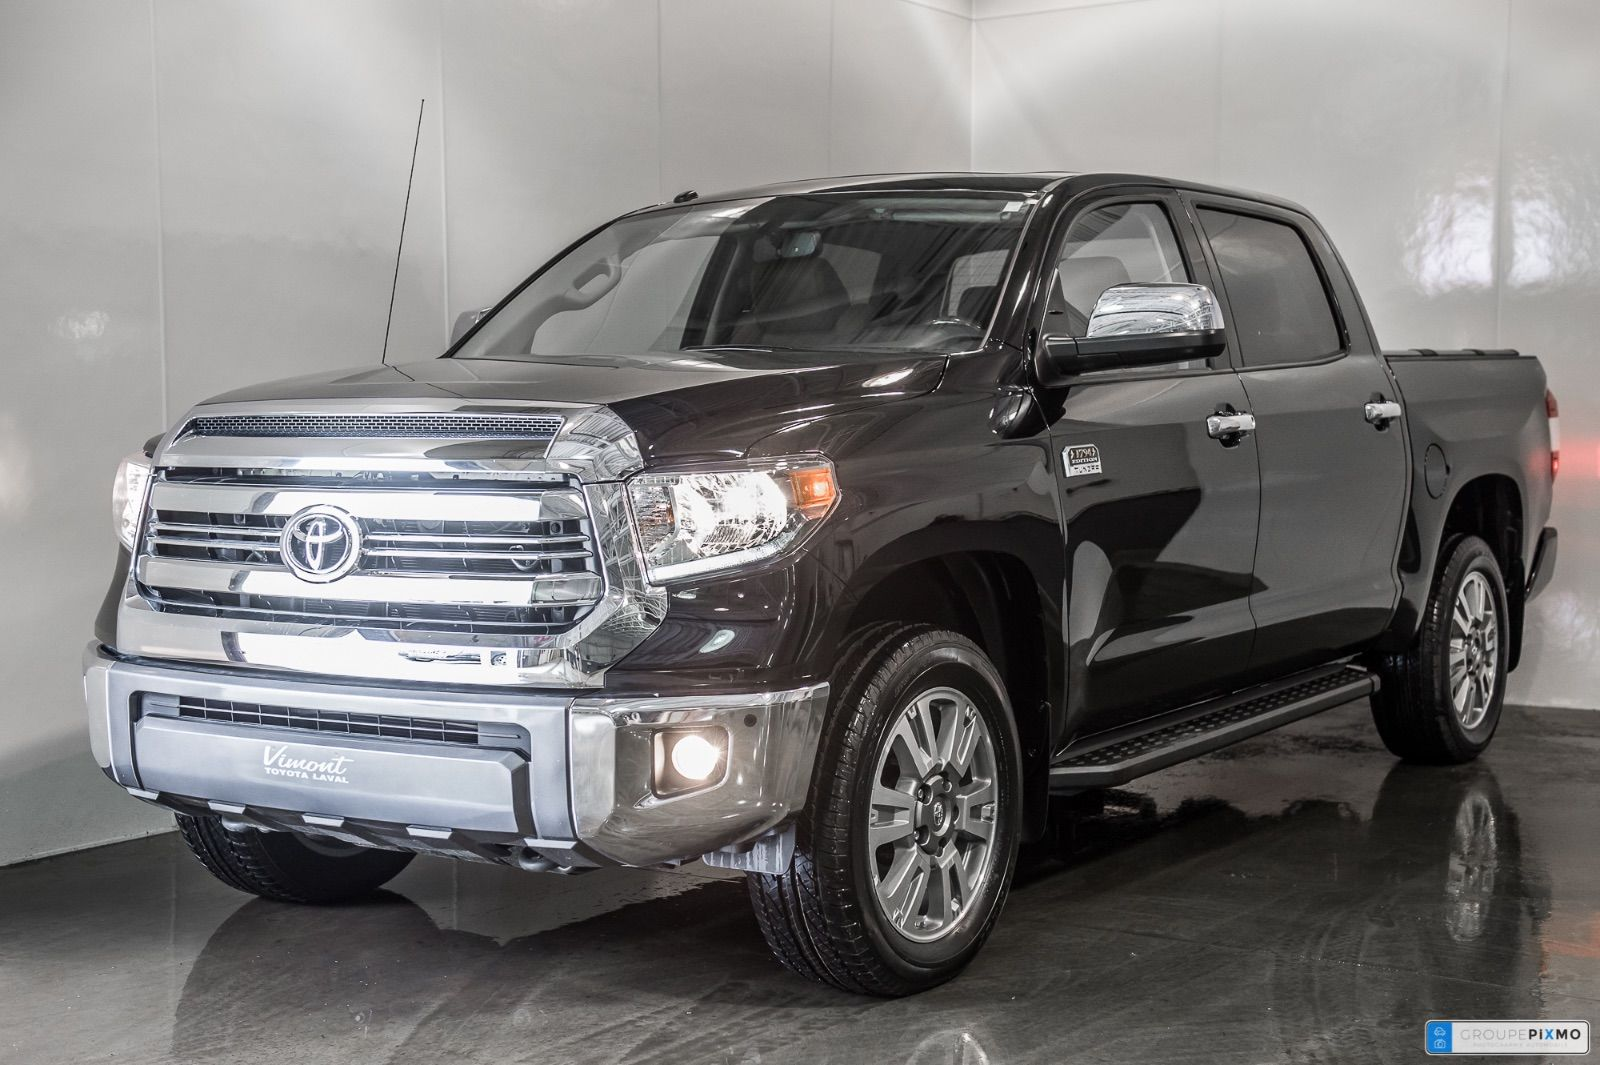 toyota tundra 1794 3500 d 39 ajouts 2017 d 39 occasion laval inventaire d 39 occasion vimont. Black Bedroom Furniture Sets. Home Design Ideas